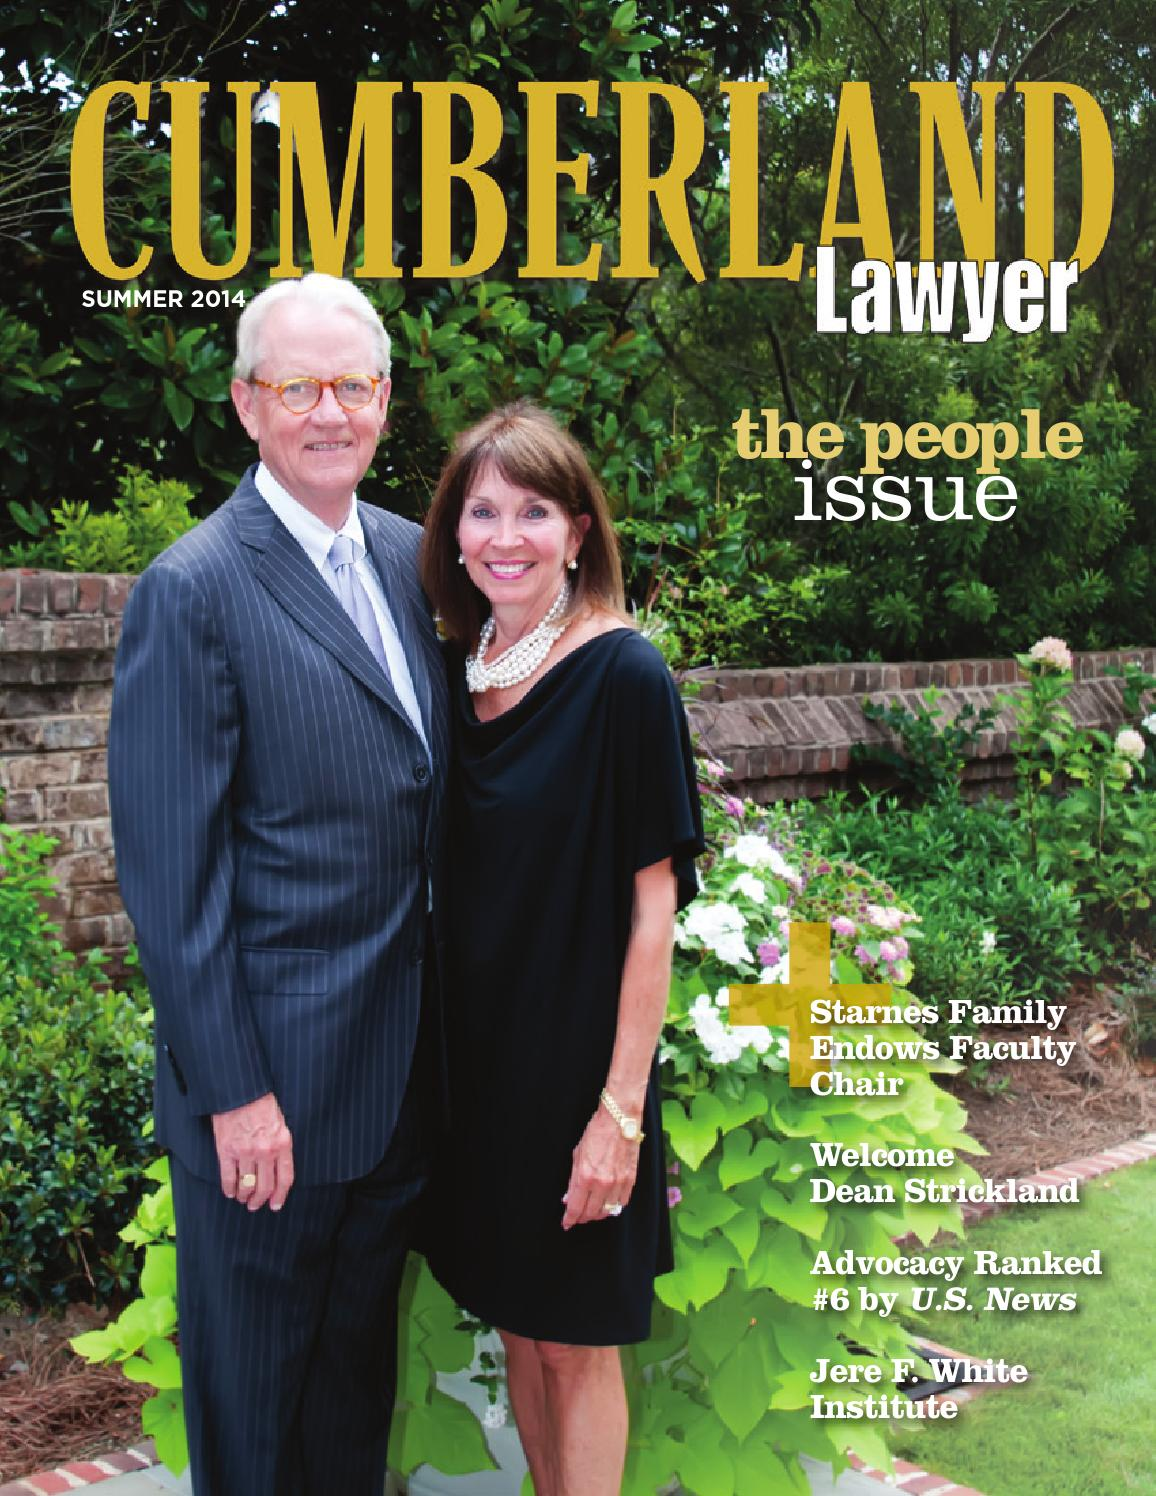 The Cumberland Lawyer Summer 2014 By Samford University S